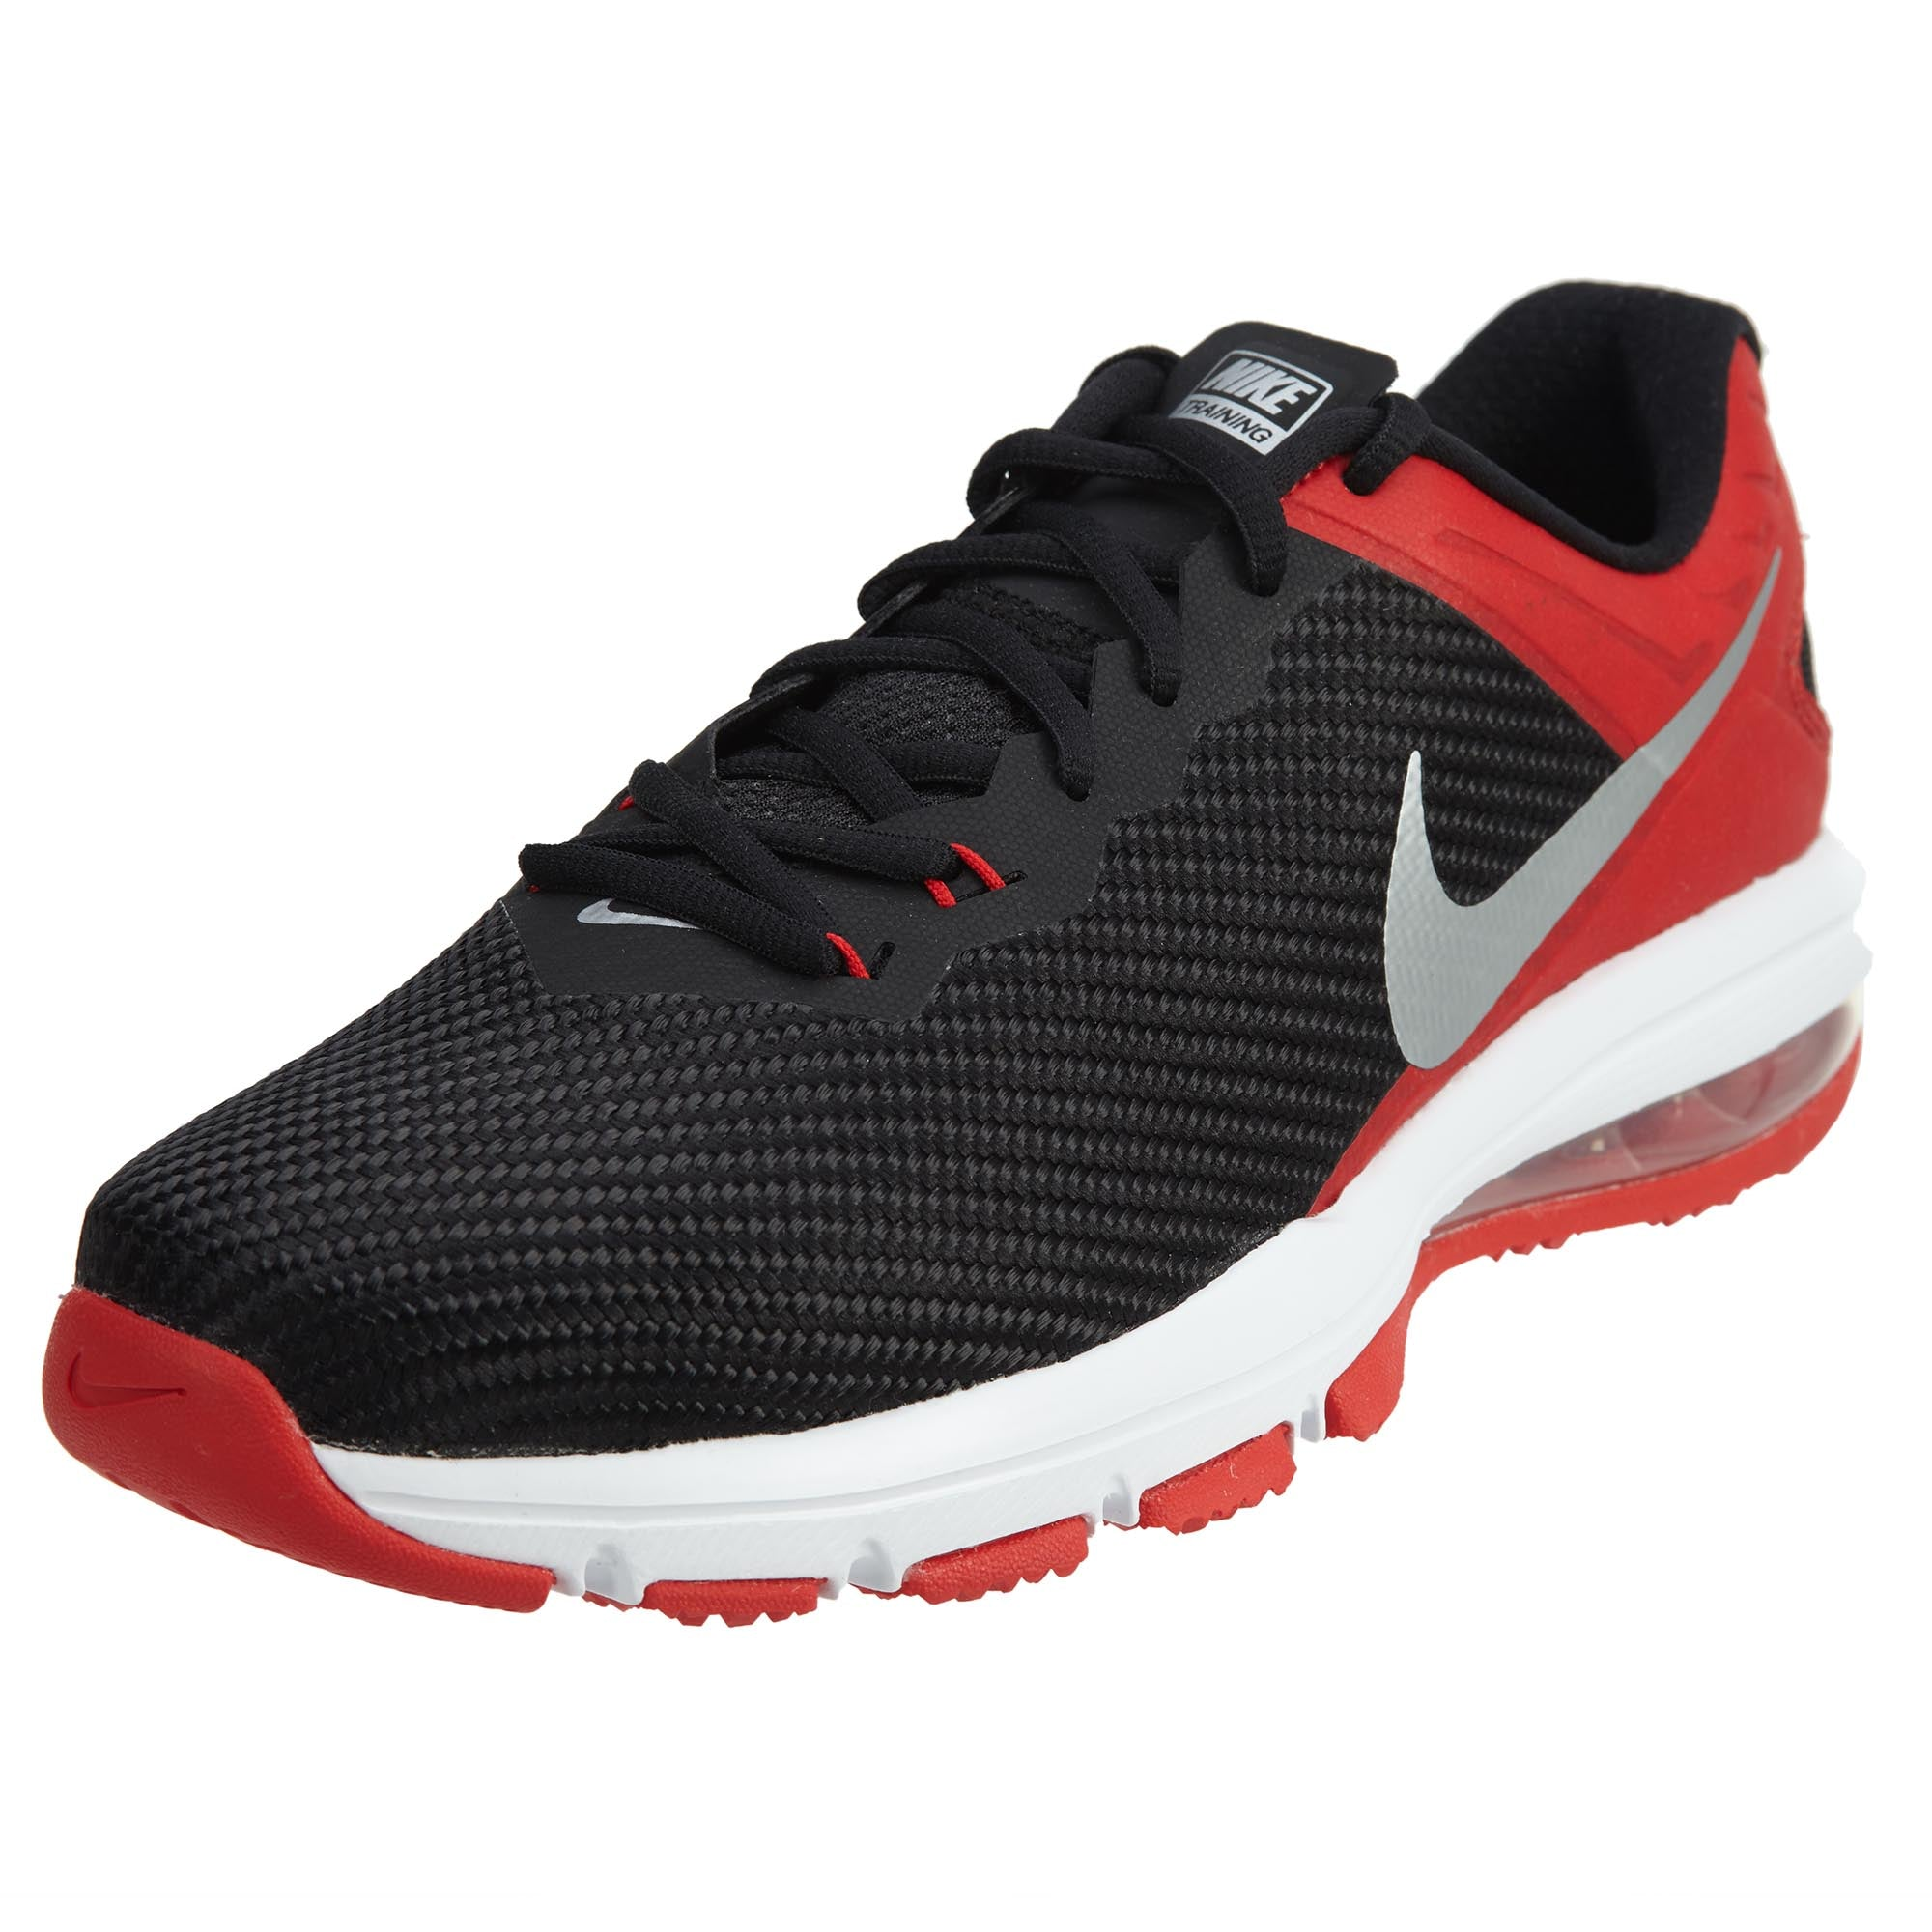 4713587e61 Nike Air Max Full Ride Tr 1.5 Mens Style : 869633 – shoesrevolutionstore